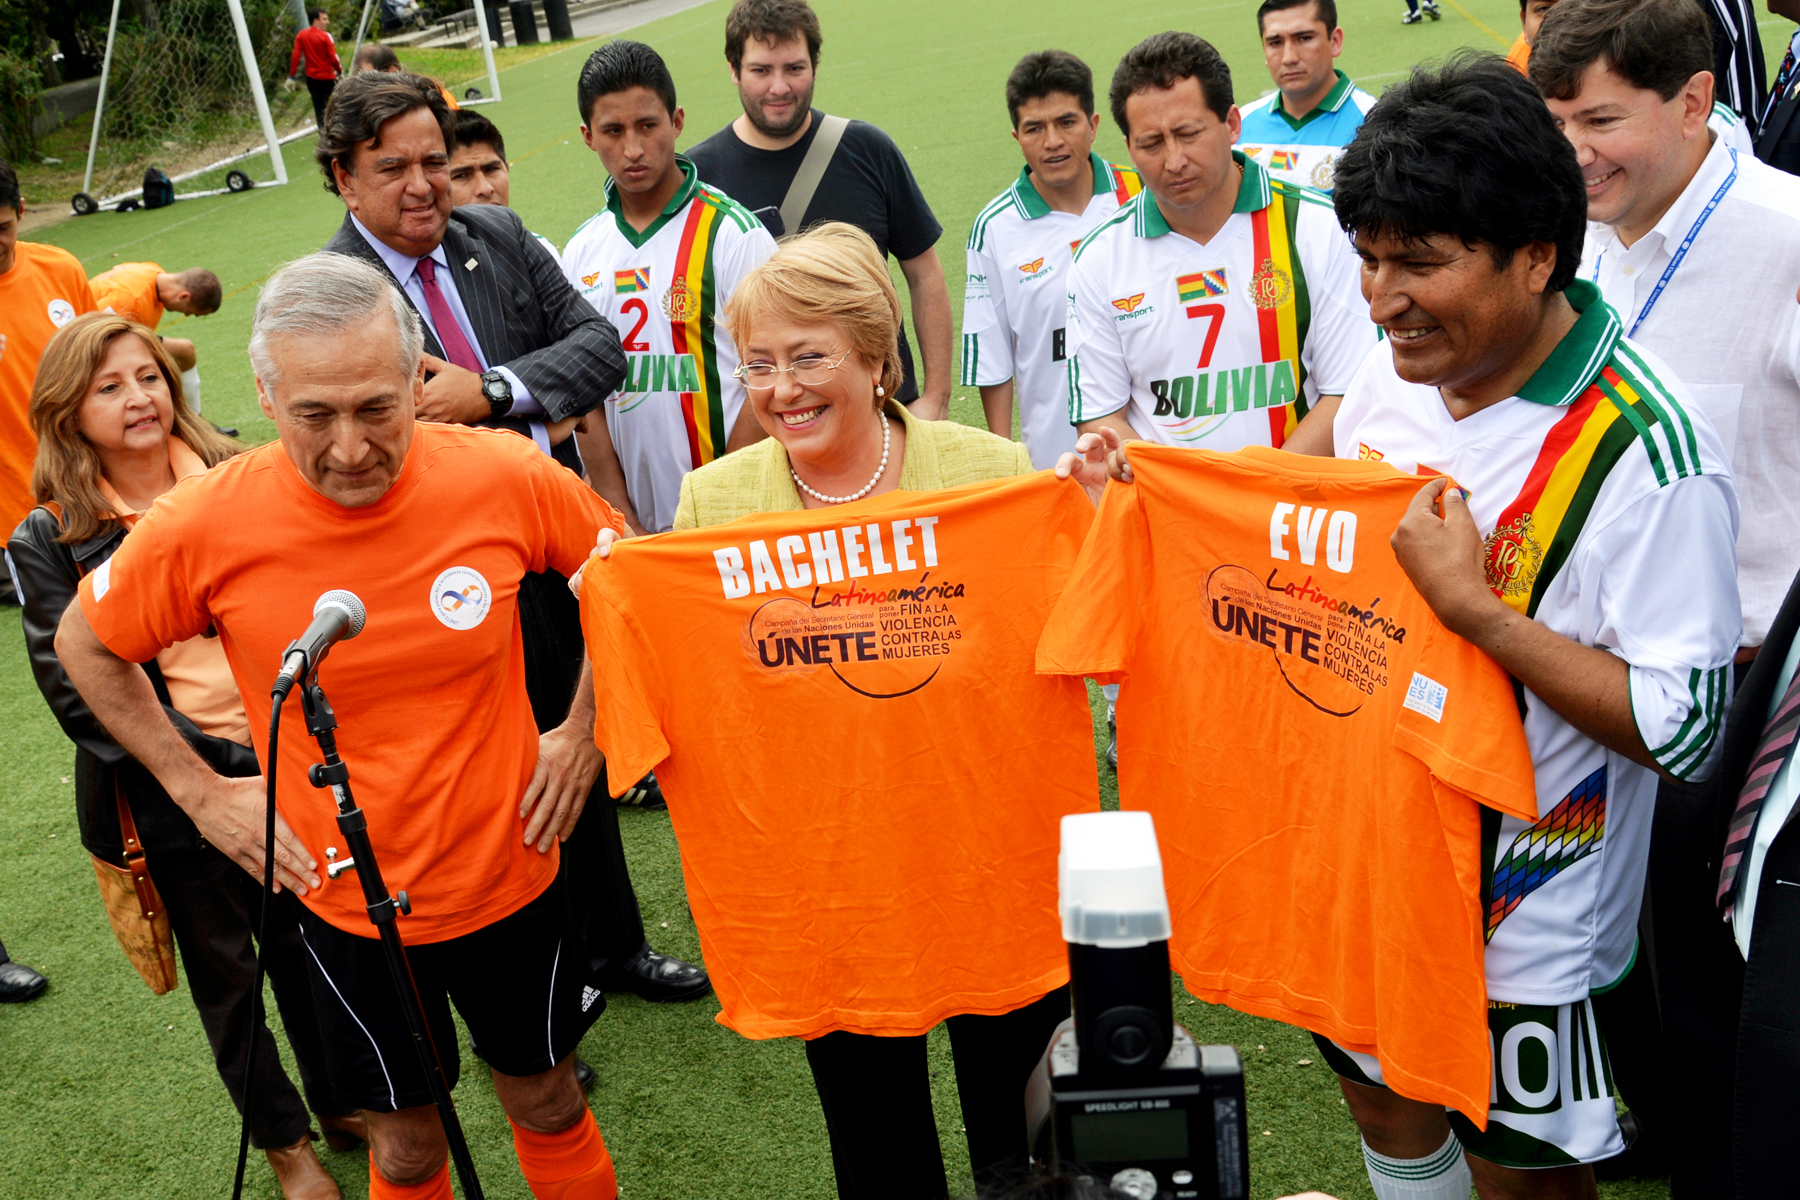 Michelle Bachelet, along with other dignitaries, are standing in a soccer field, proudly holding up orange t-shirts advocating to end all forms of violence against women and girls.